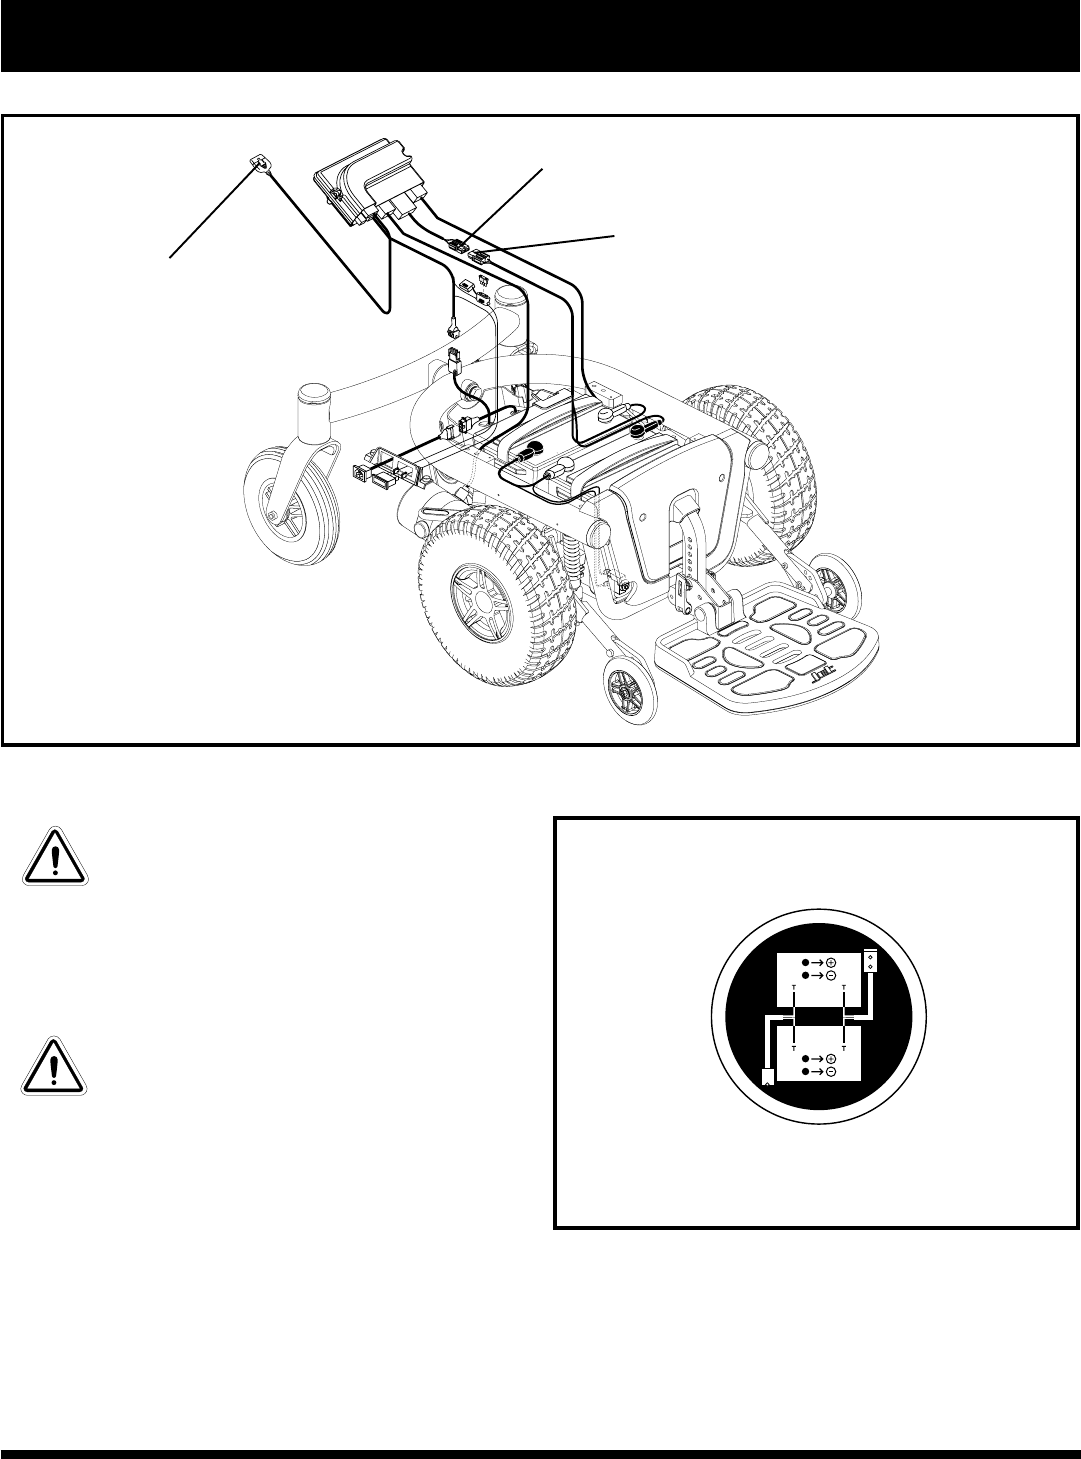 6dc69666 e3c5 4f7f 95c8 2ac0b576ce44 bg26 page 38 of pride mobility mobility aid jet 3 user guide Jazzy Select Power Chair Wiring Diagram at love-stories.co